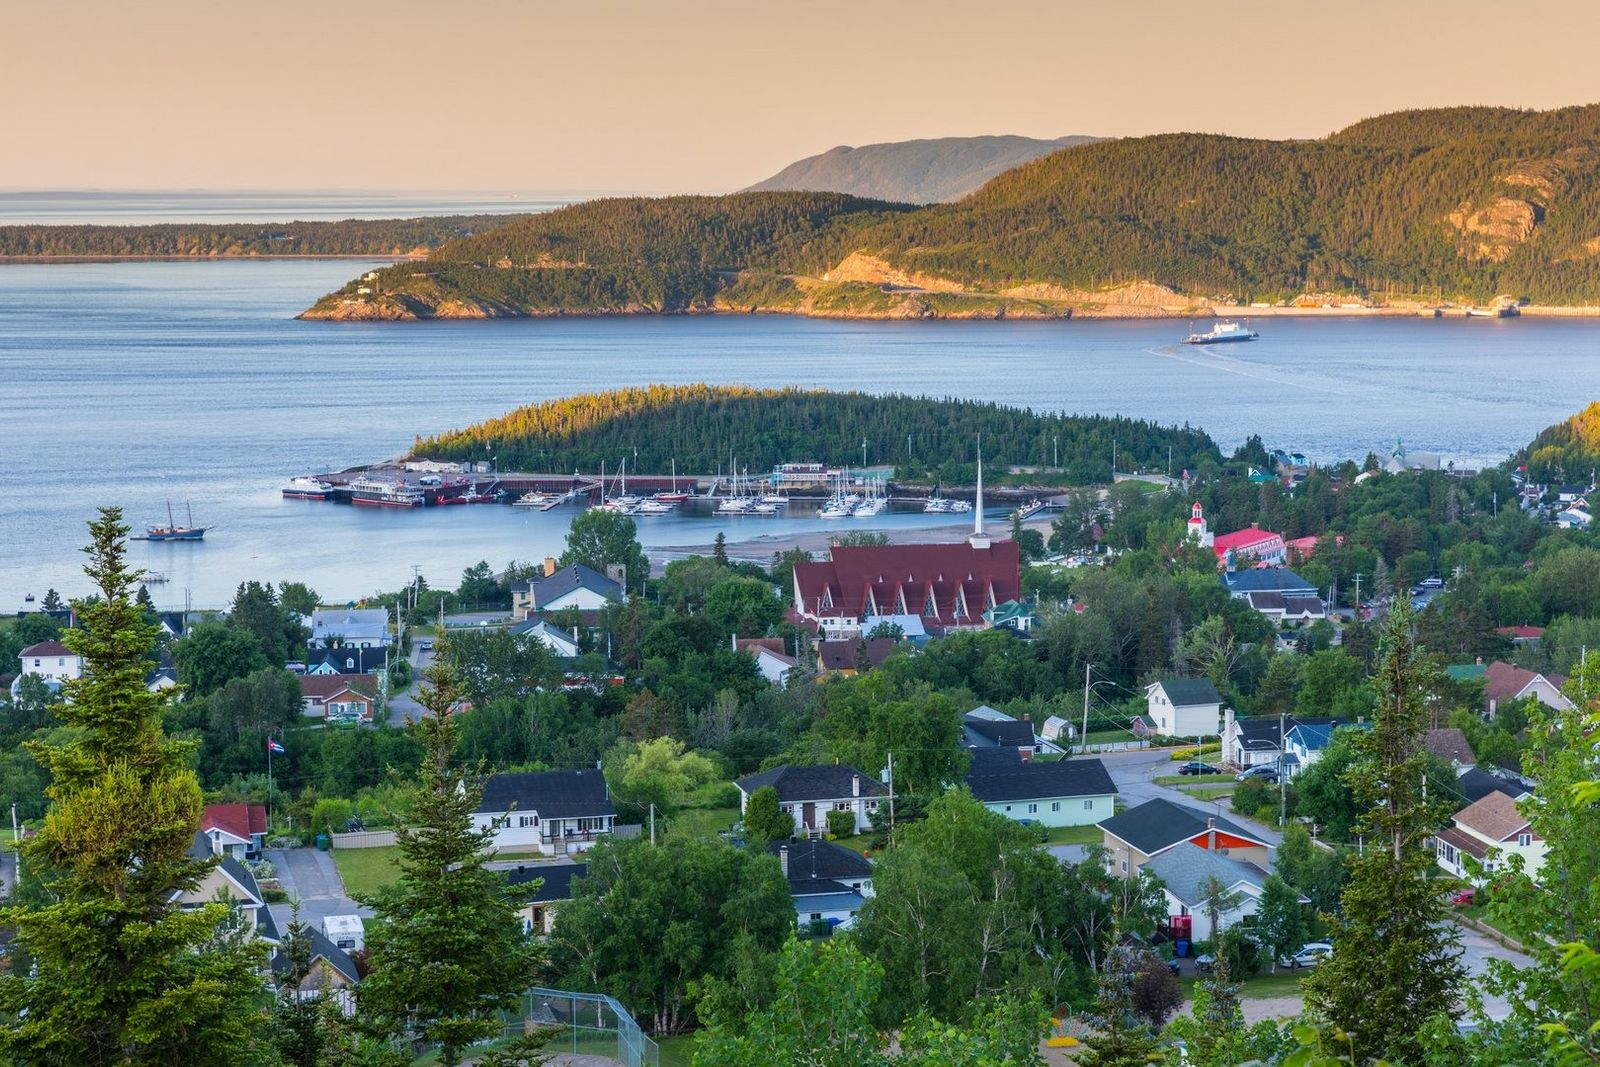 View of the charming town of Tadoussac located on the northwest shore of the Saint Lawrence ...